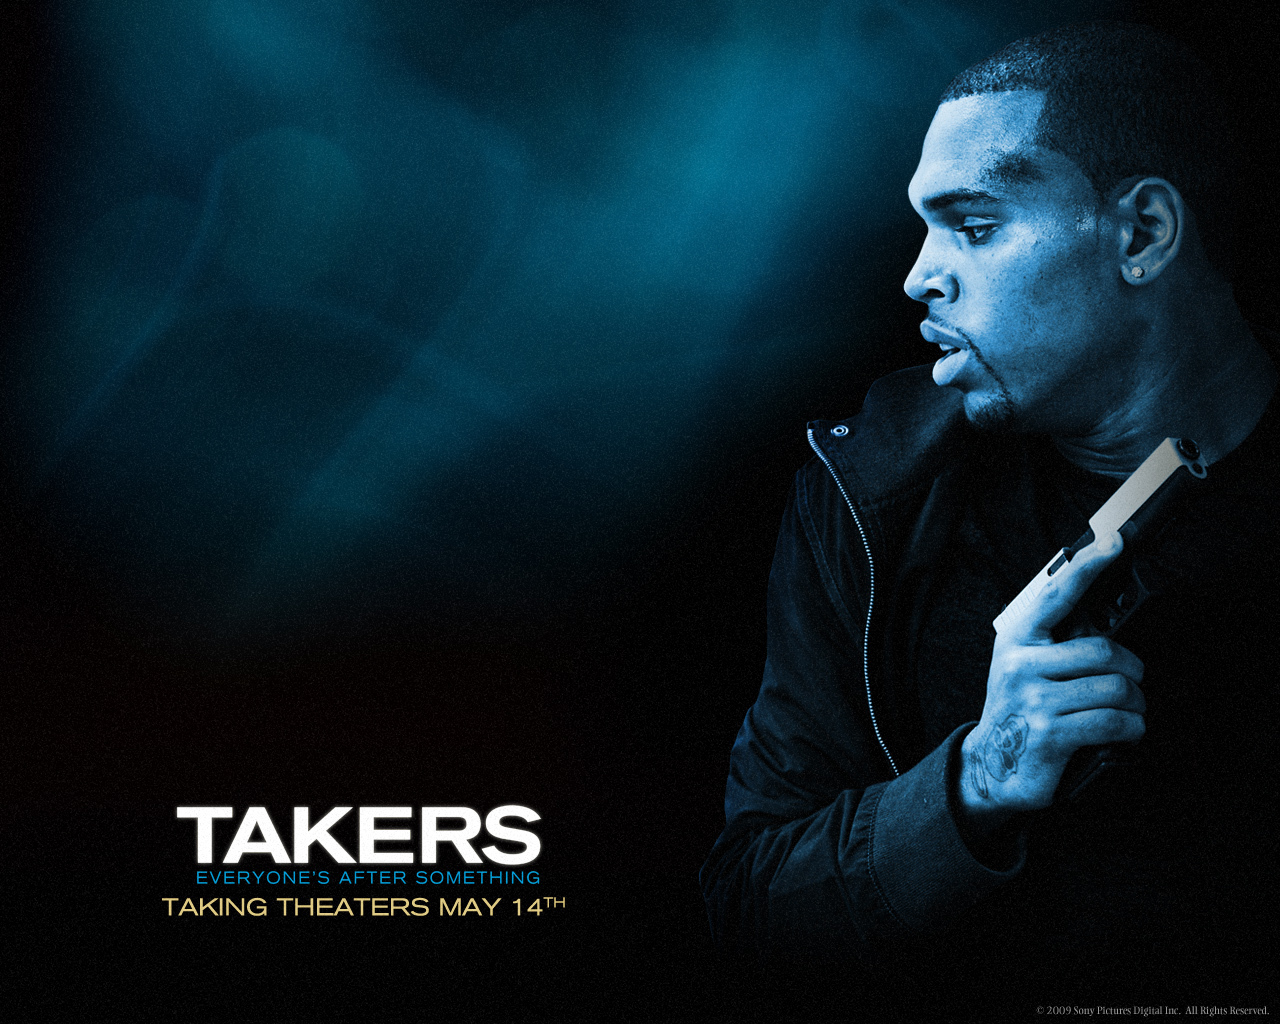 takers 2010 upcoming movies wallpaper 9873167 fanpop